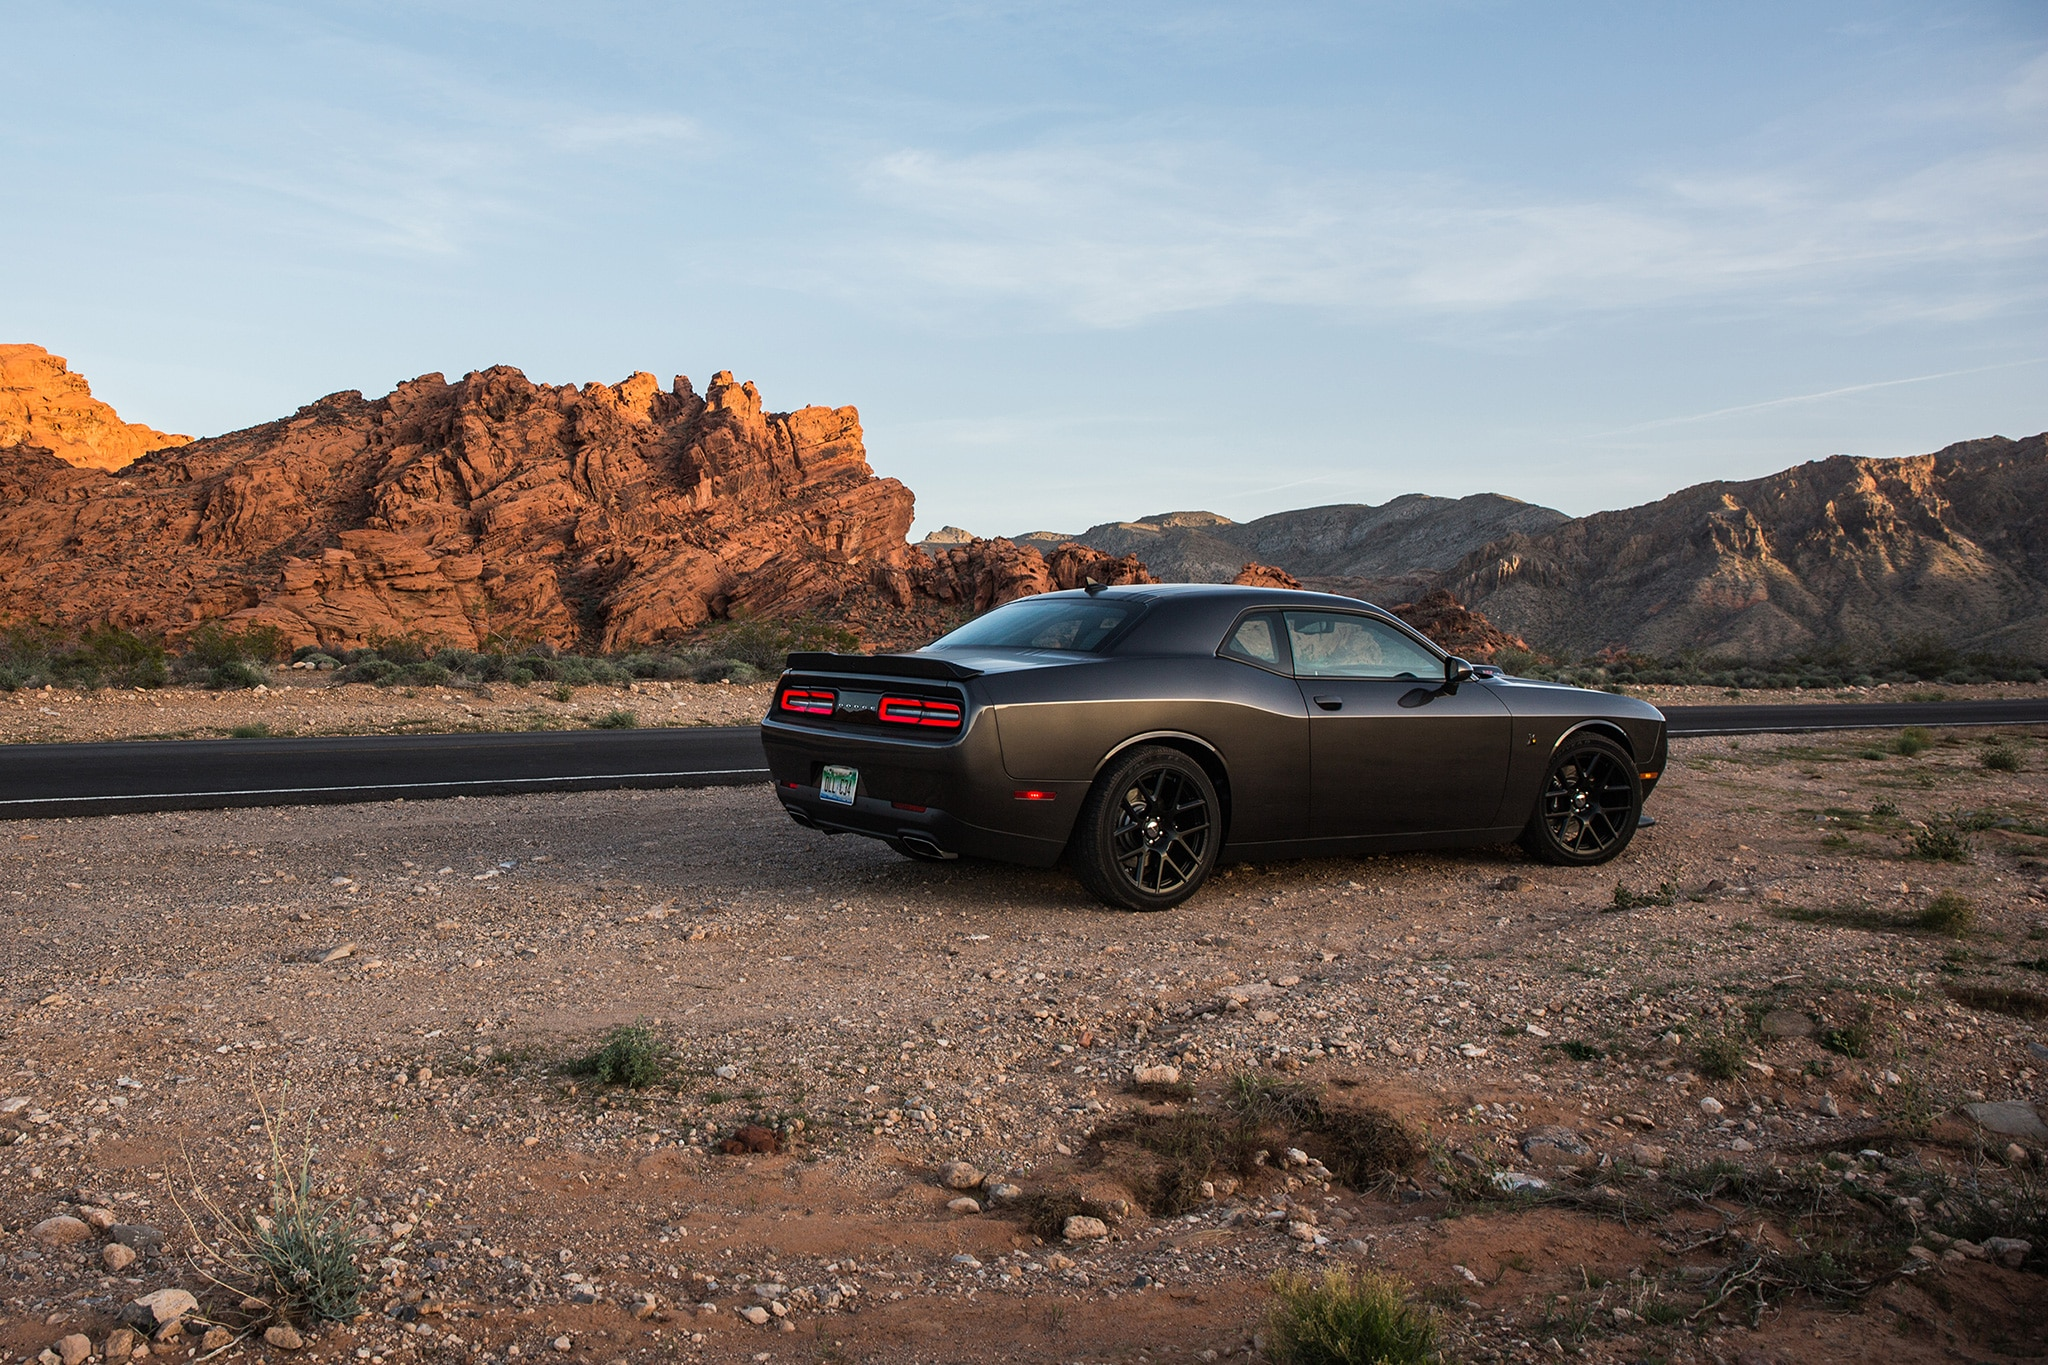 392 Hemi Scat Pack Shaker >> 2017 Dodge Challenger T/A and Charger Daytona Add Retro Flair, More Muscle | Automobile Magazine